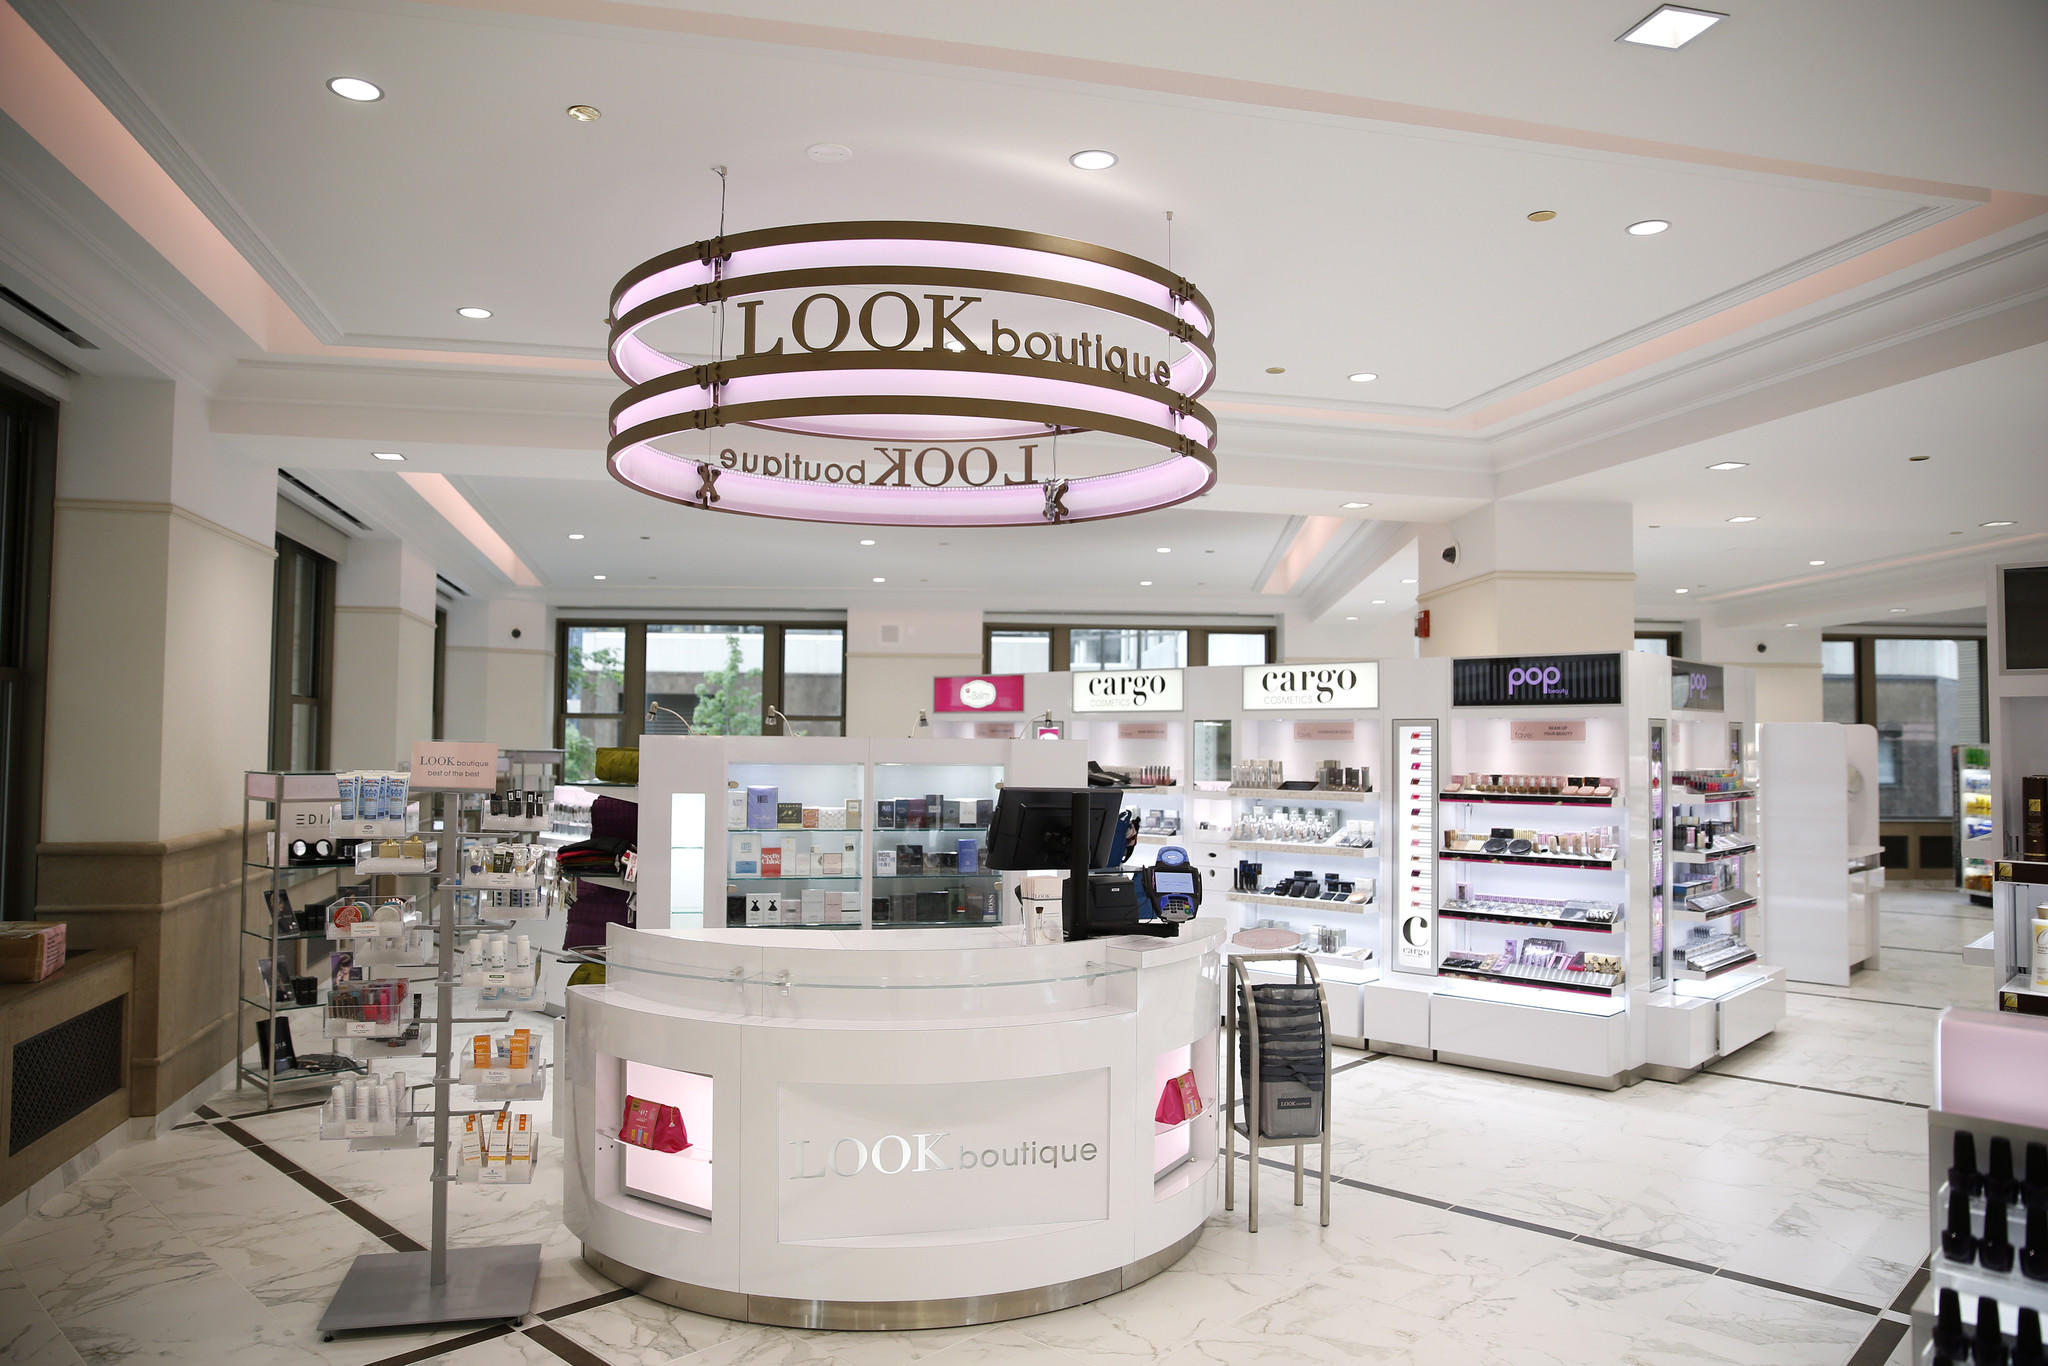 The Look Boutique area at a new Walgreens on the 400 block of North Michigan Avenue in Chicago on Tuesday, June 24, 2014. Walgreen Co. will be opening the 30,000-square-foot, two-level store will open tomorrow, Wednesday morning.